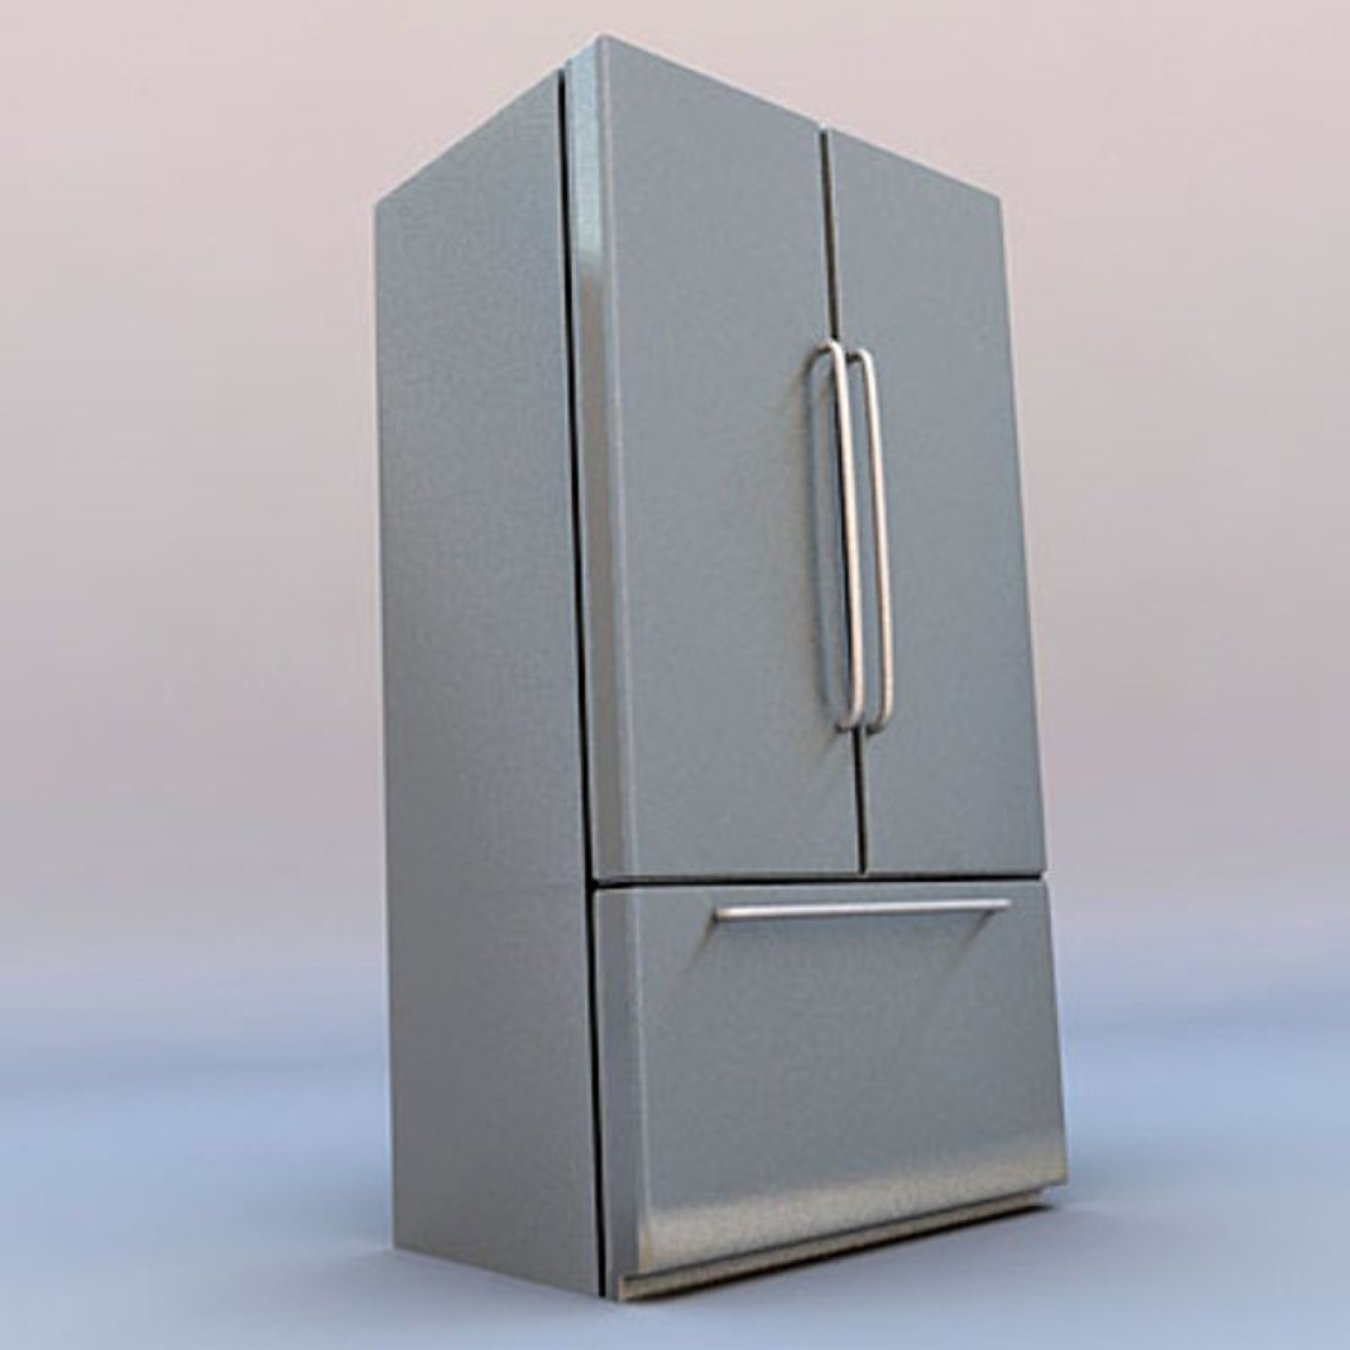 2 Door Vs. 3 Door Refrigerator - Which is better Image